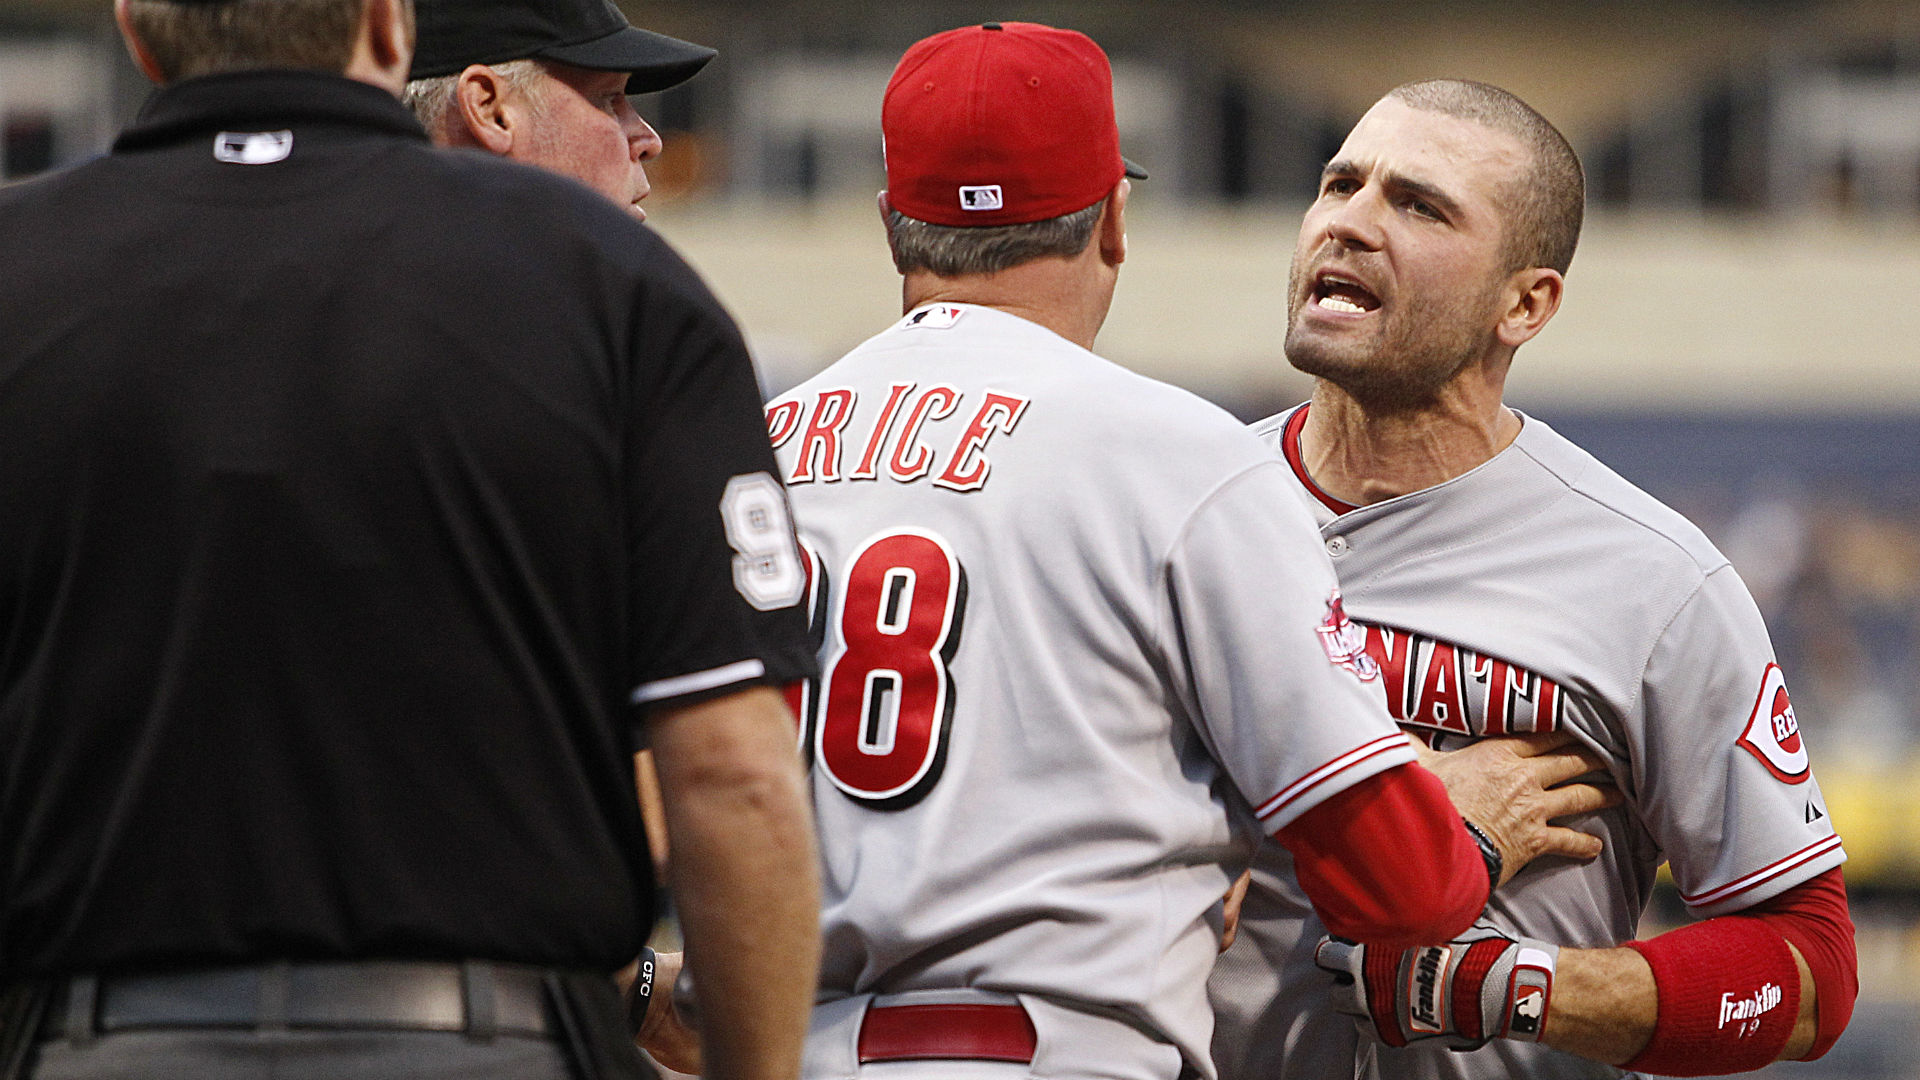 Joey Votto charges ump, makes contact during post-ejection tirade